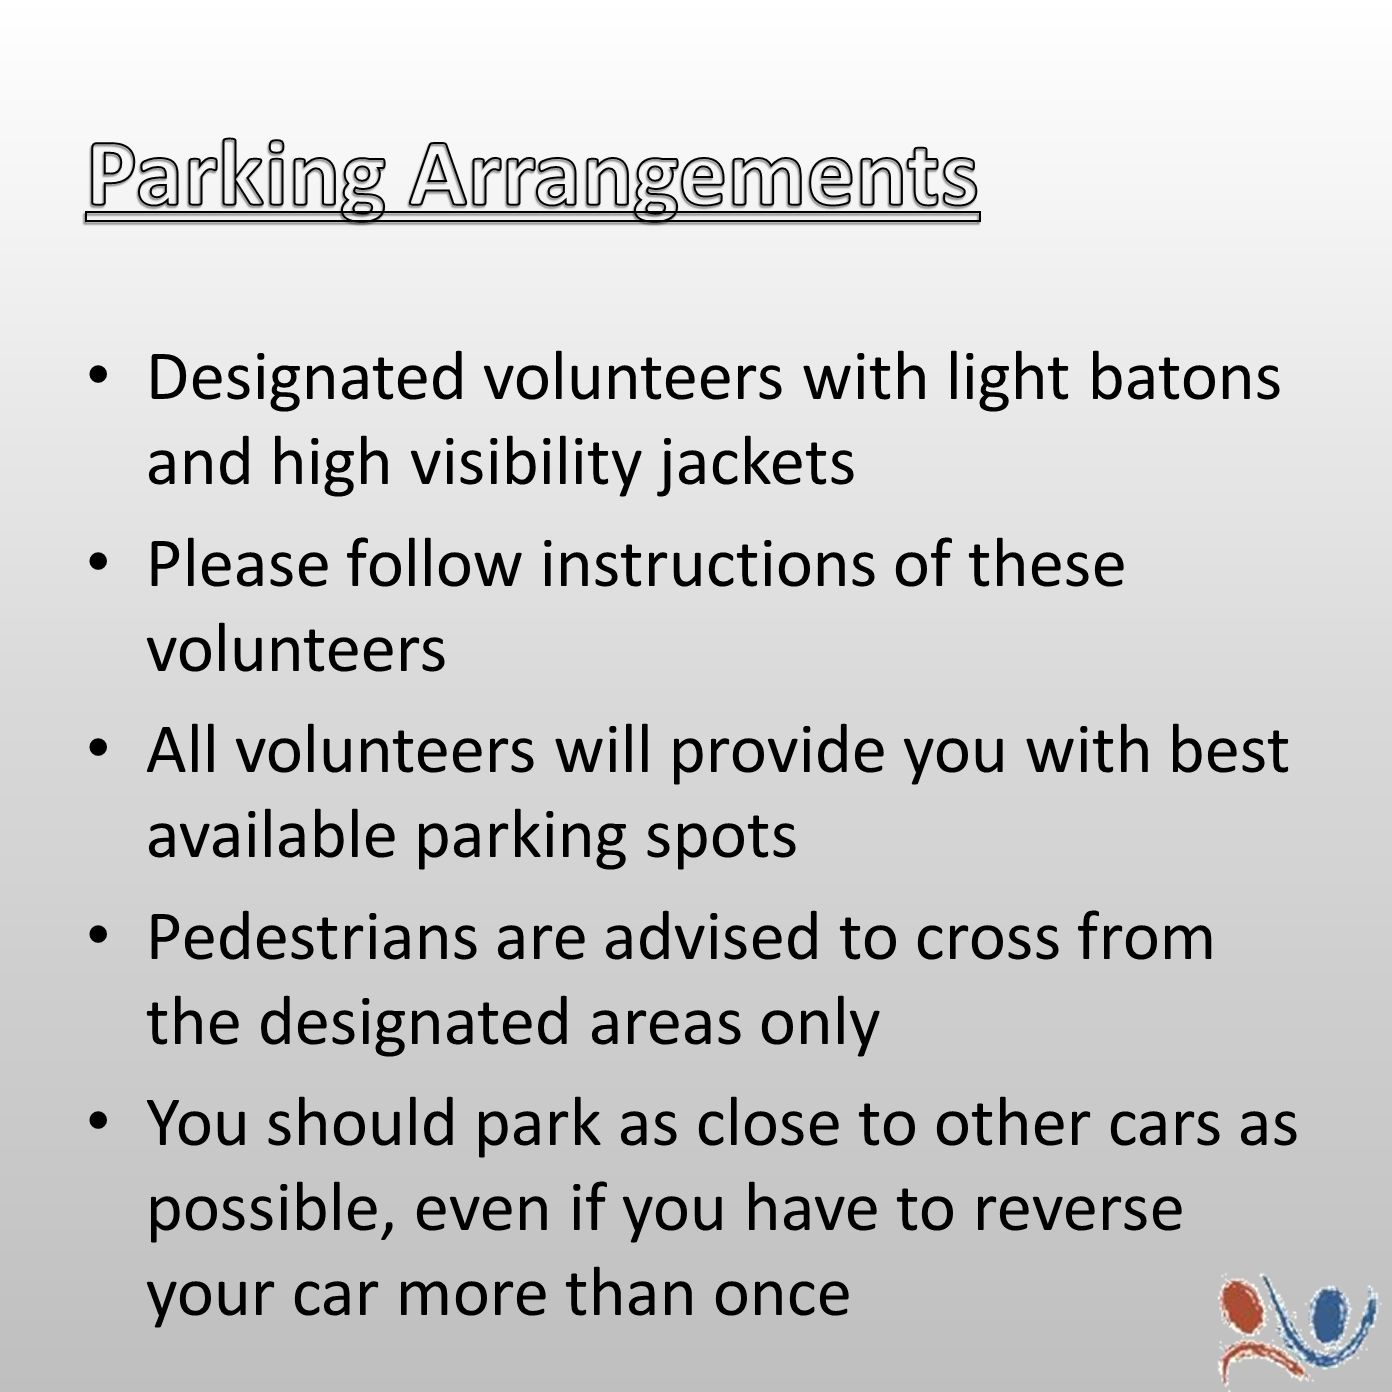 Designated volunteers with light batons and high visibility jackets Please follow instructions of these volunteers All volunteers will provide you with best available parking spots Pedestrians are advised to cross from the designated areas only You should park as close to other cars as possible, even if you have to reverse your car more than once